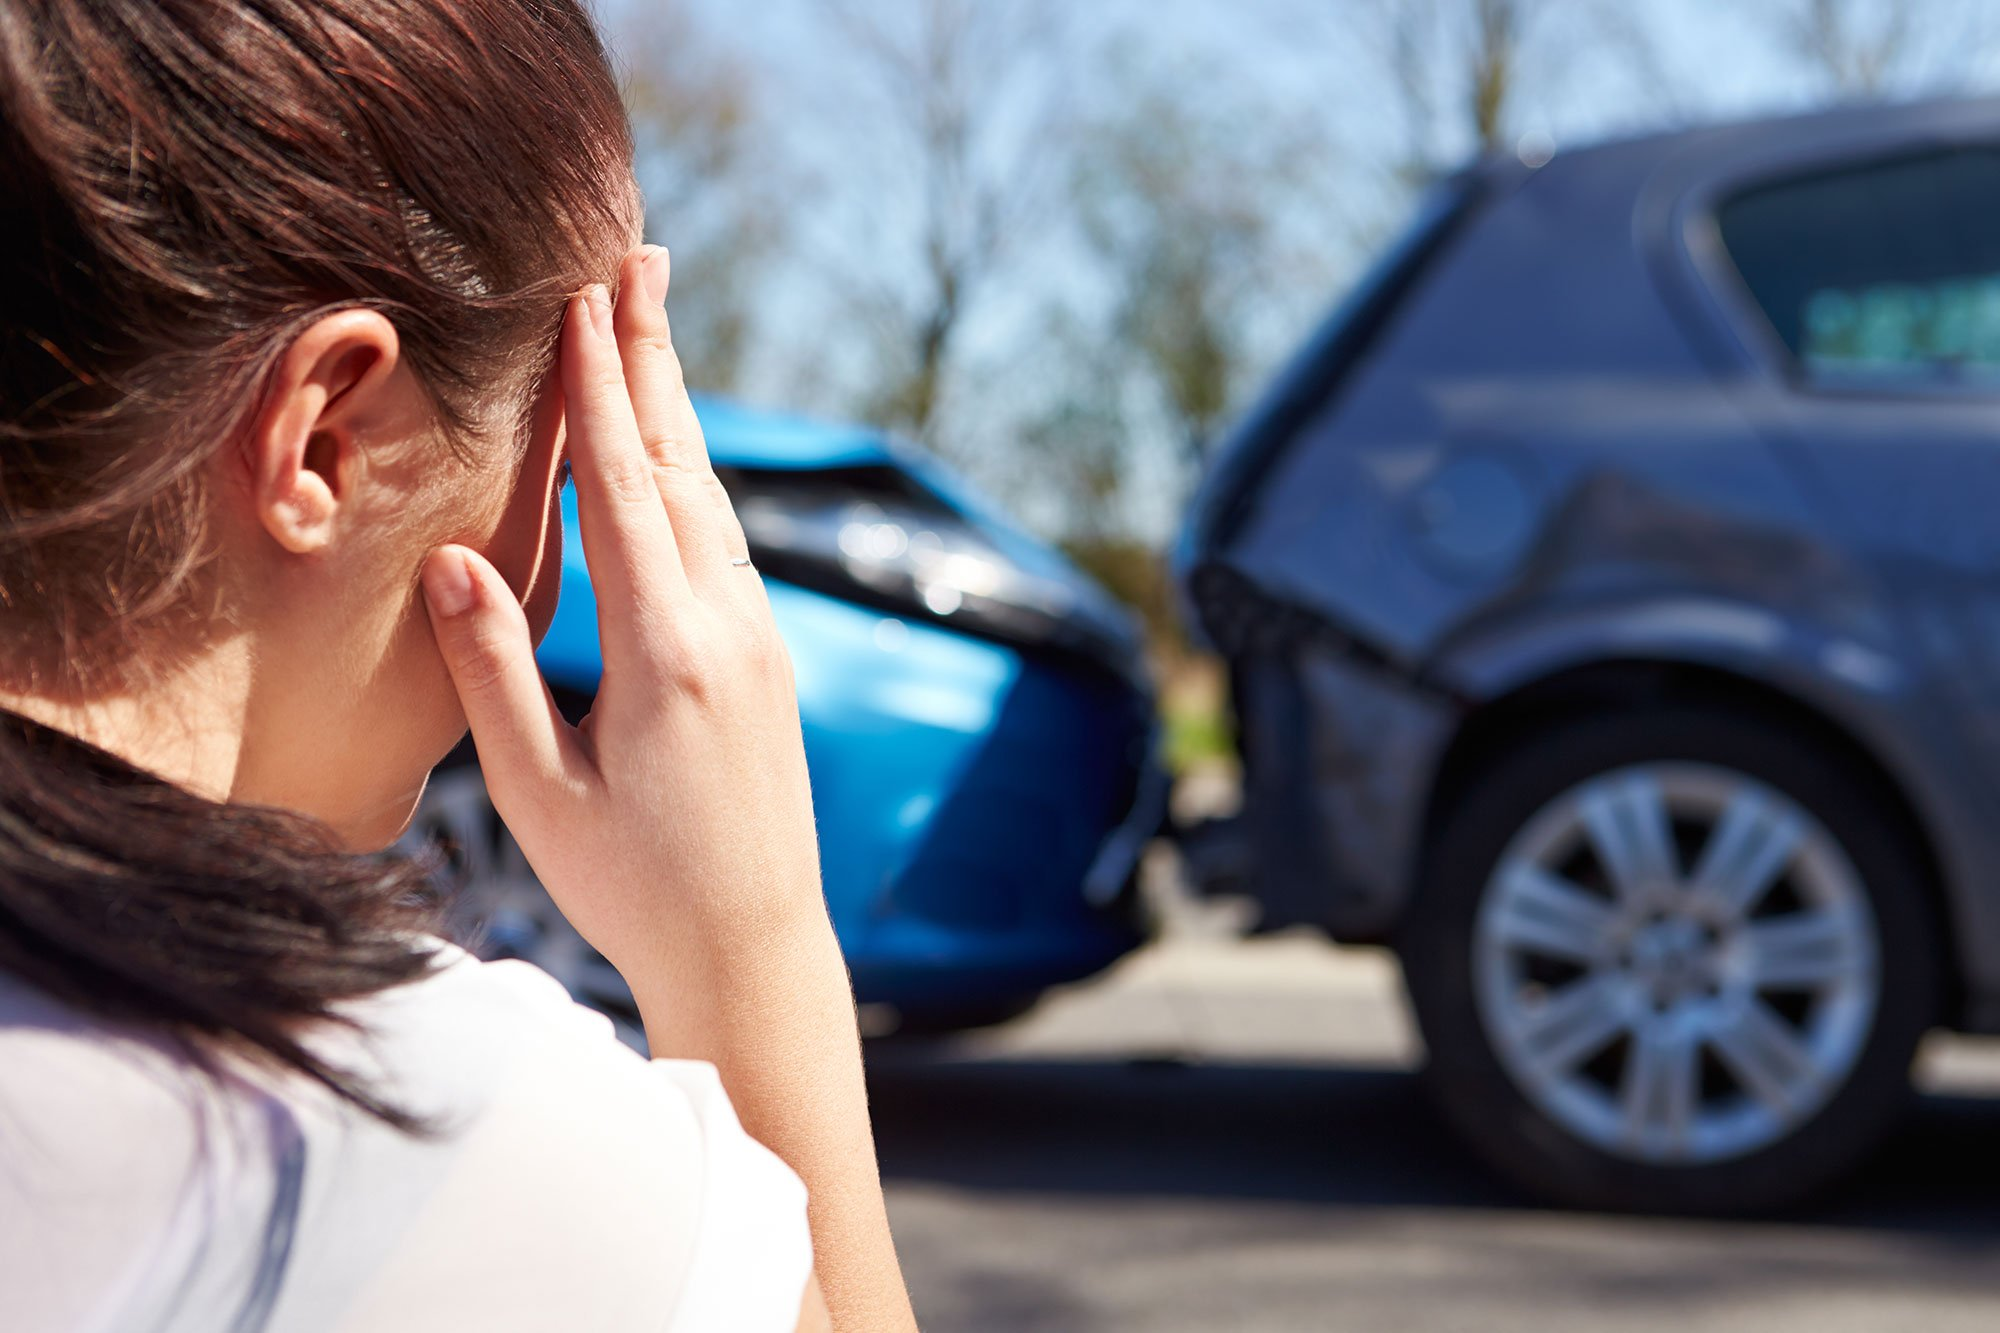 Car accident lawyers in Bentonville, AR